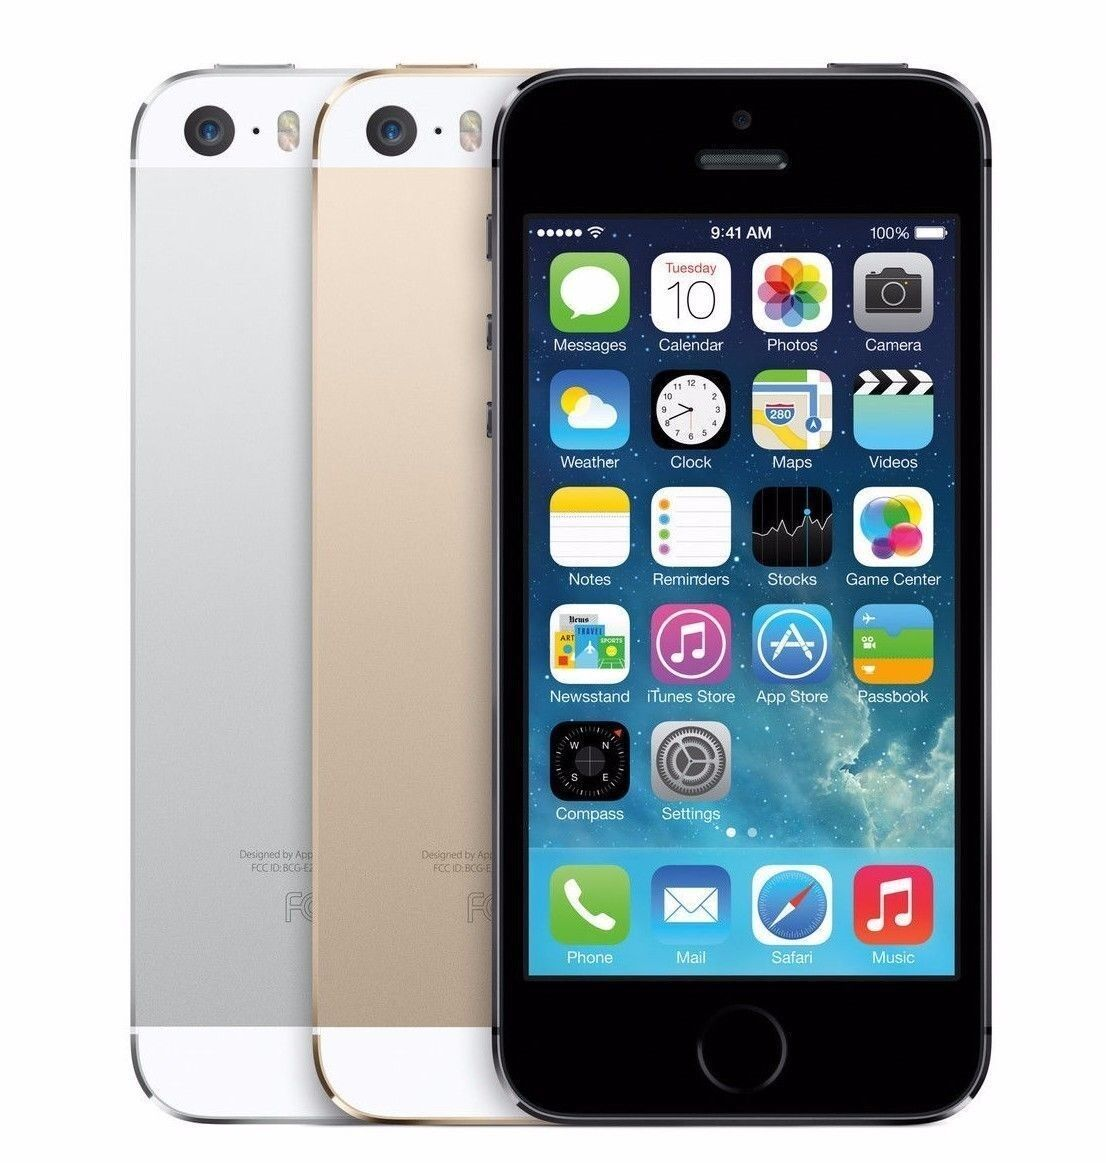 apple iphone 5s 16gb verizon wireless 4g lte space gray. Black Bedroom Furniture Sets. Home Design Ideas